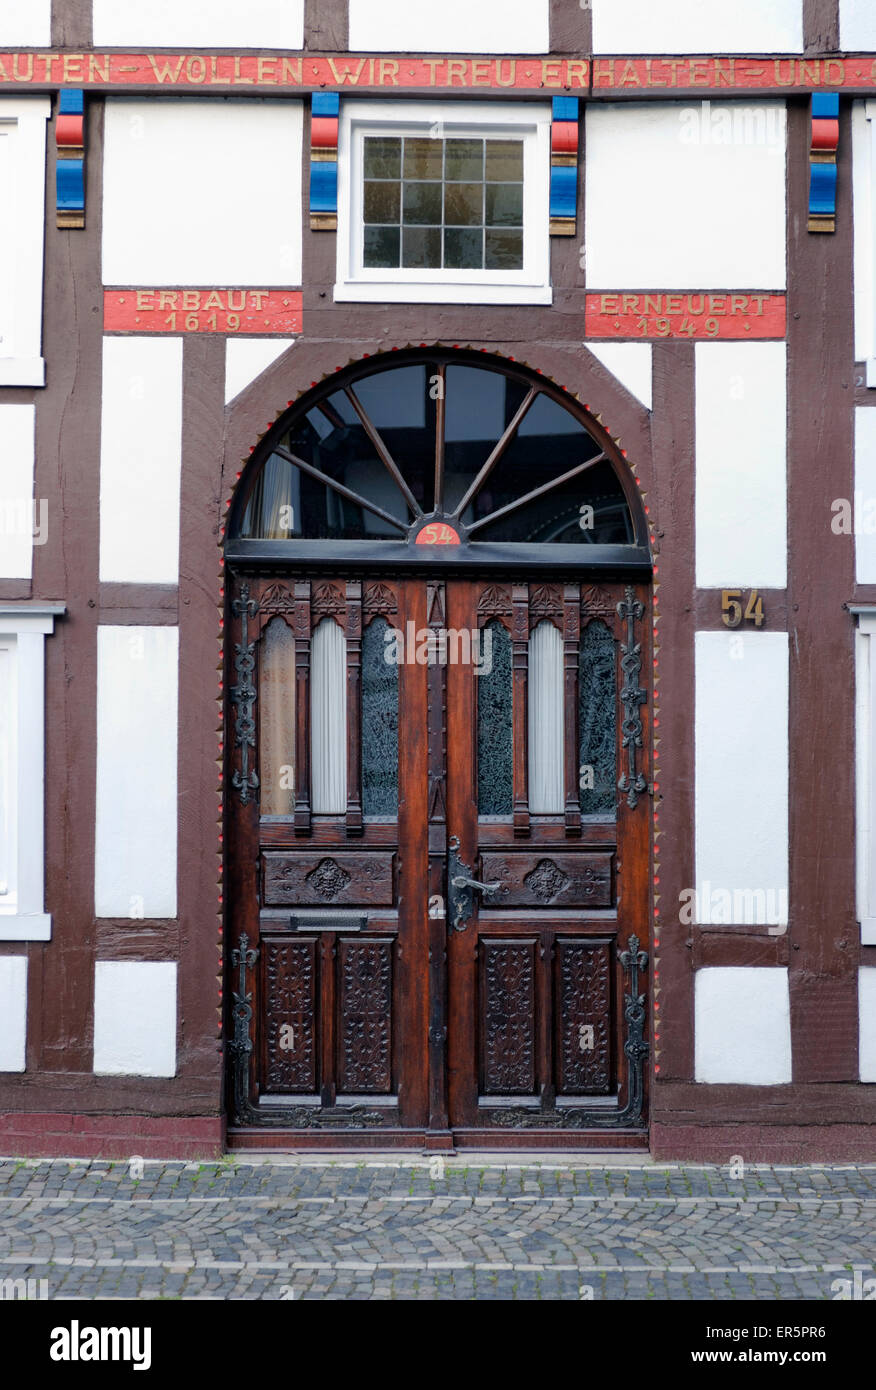 Entrance to a half-timbered house in Langenstrasse in Wiedenbrueck, Rheda-Wiedenbrueck, North Rhine-Westphalia, - Stock Image